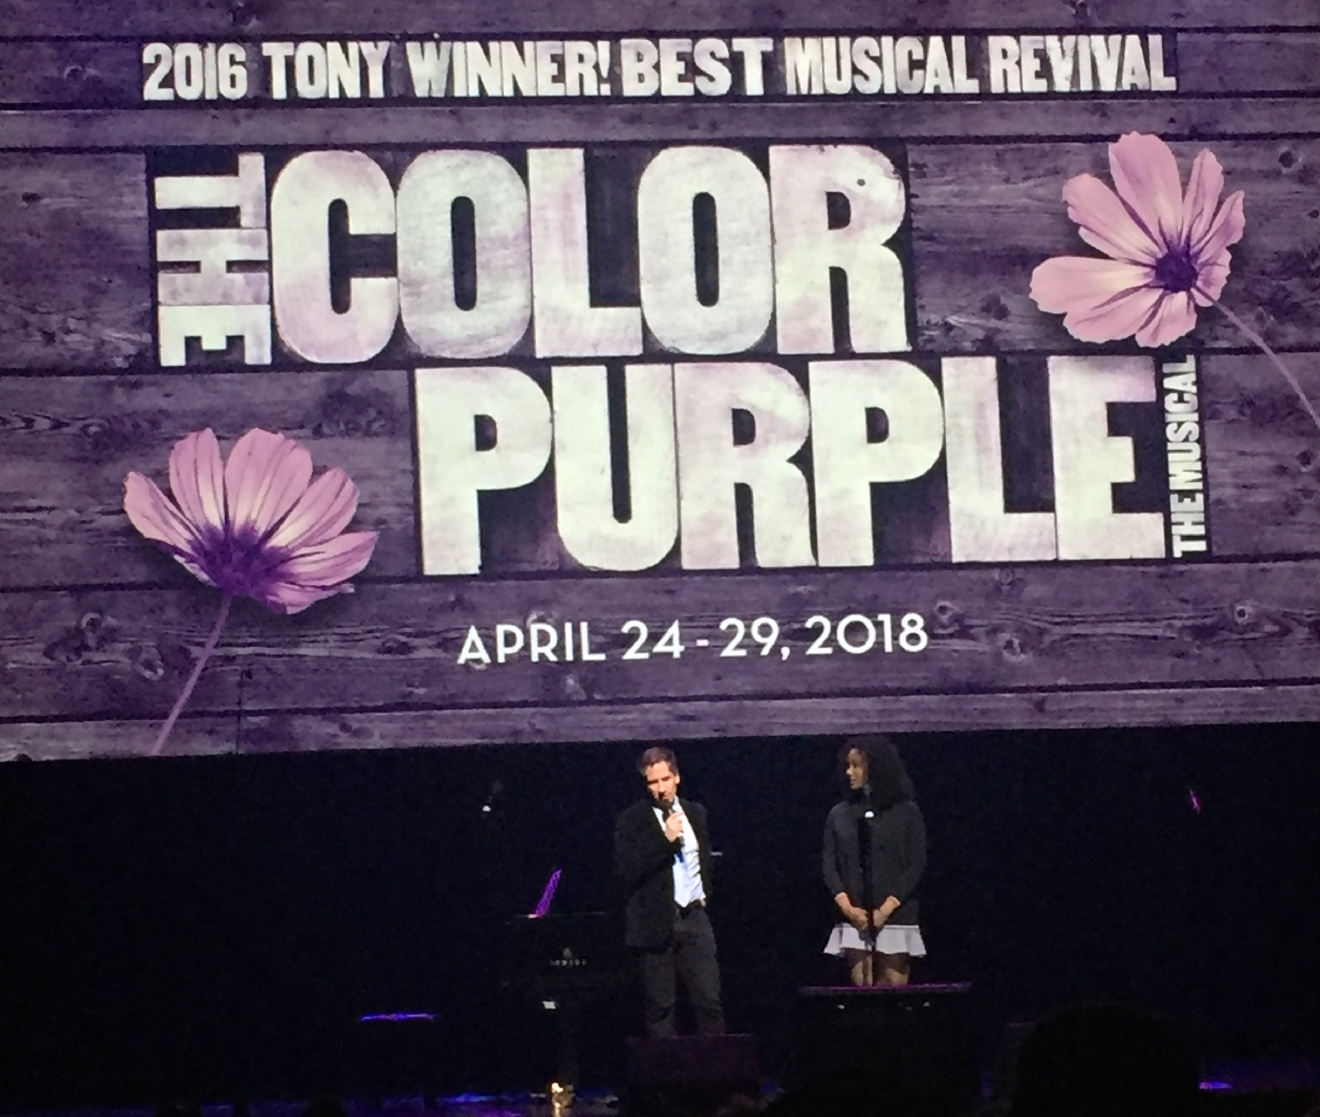 The Color Purple was revealed as an upcoming tour during the Smith Center for the Performing Arts 2017-2018 Broadway series preview Tuesday, Feb. 28, 2017, in Reynolds Hall. Event MC Seth Rudetsky introduced Adrianna Hicks, a star in the upcoming musical. (Jami Seymore | KSNV)